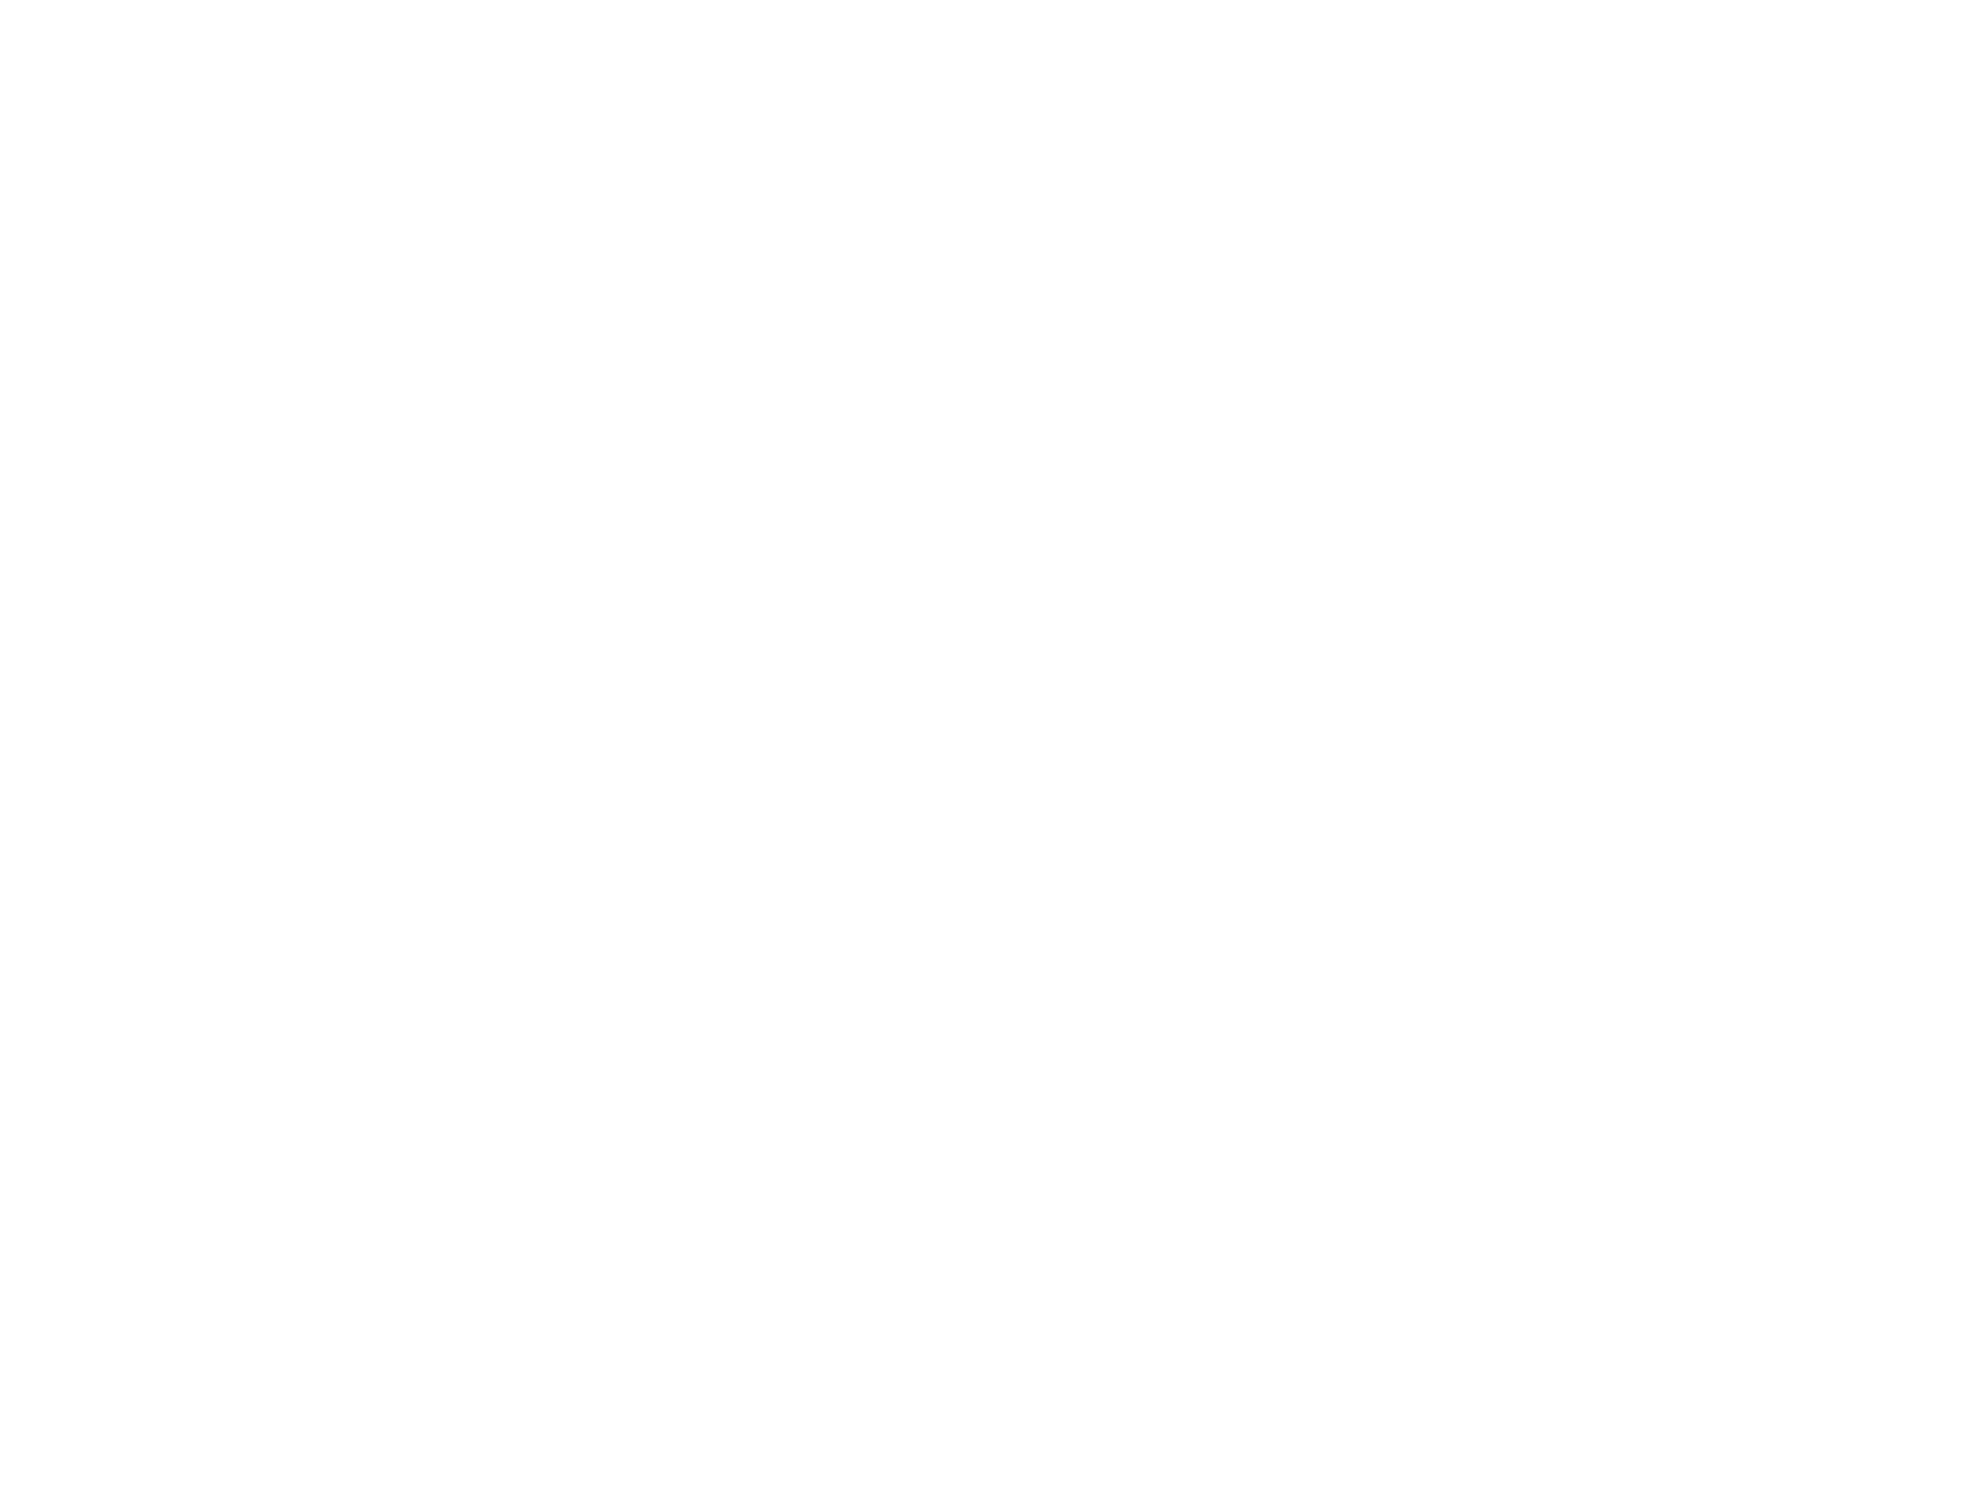 White light png. Index of images biglightpng